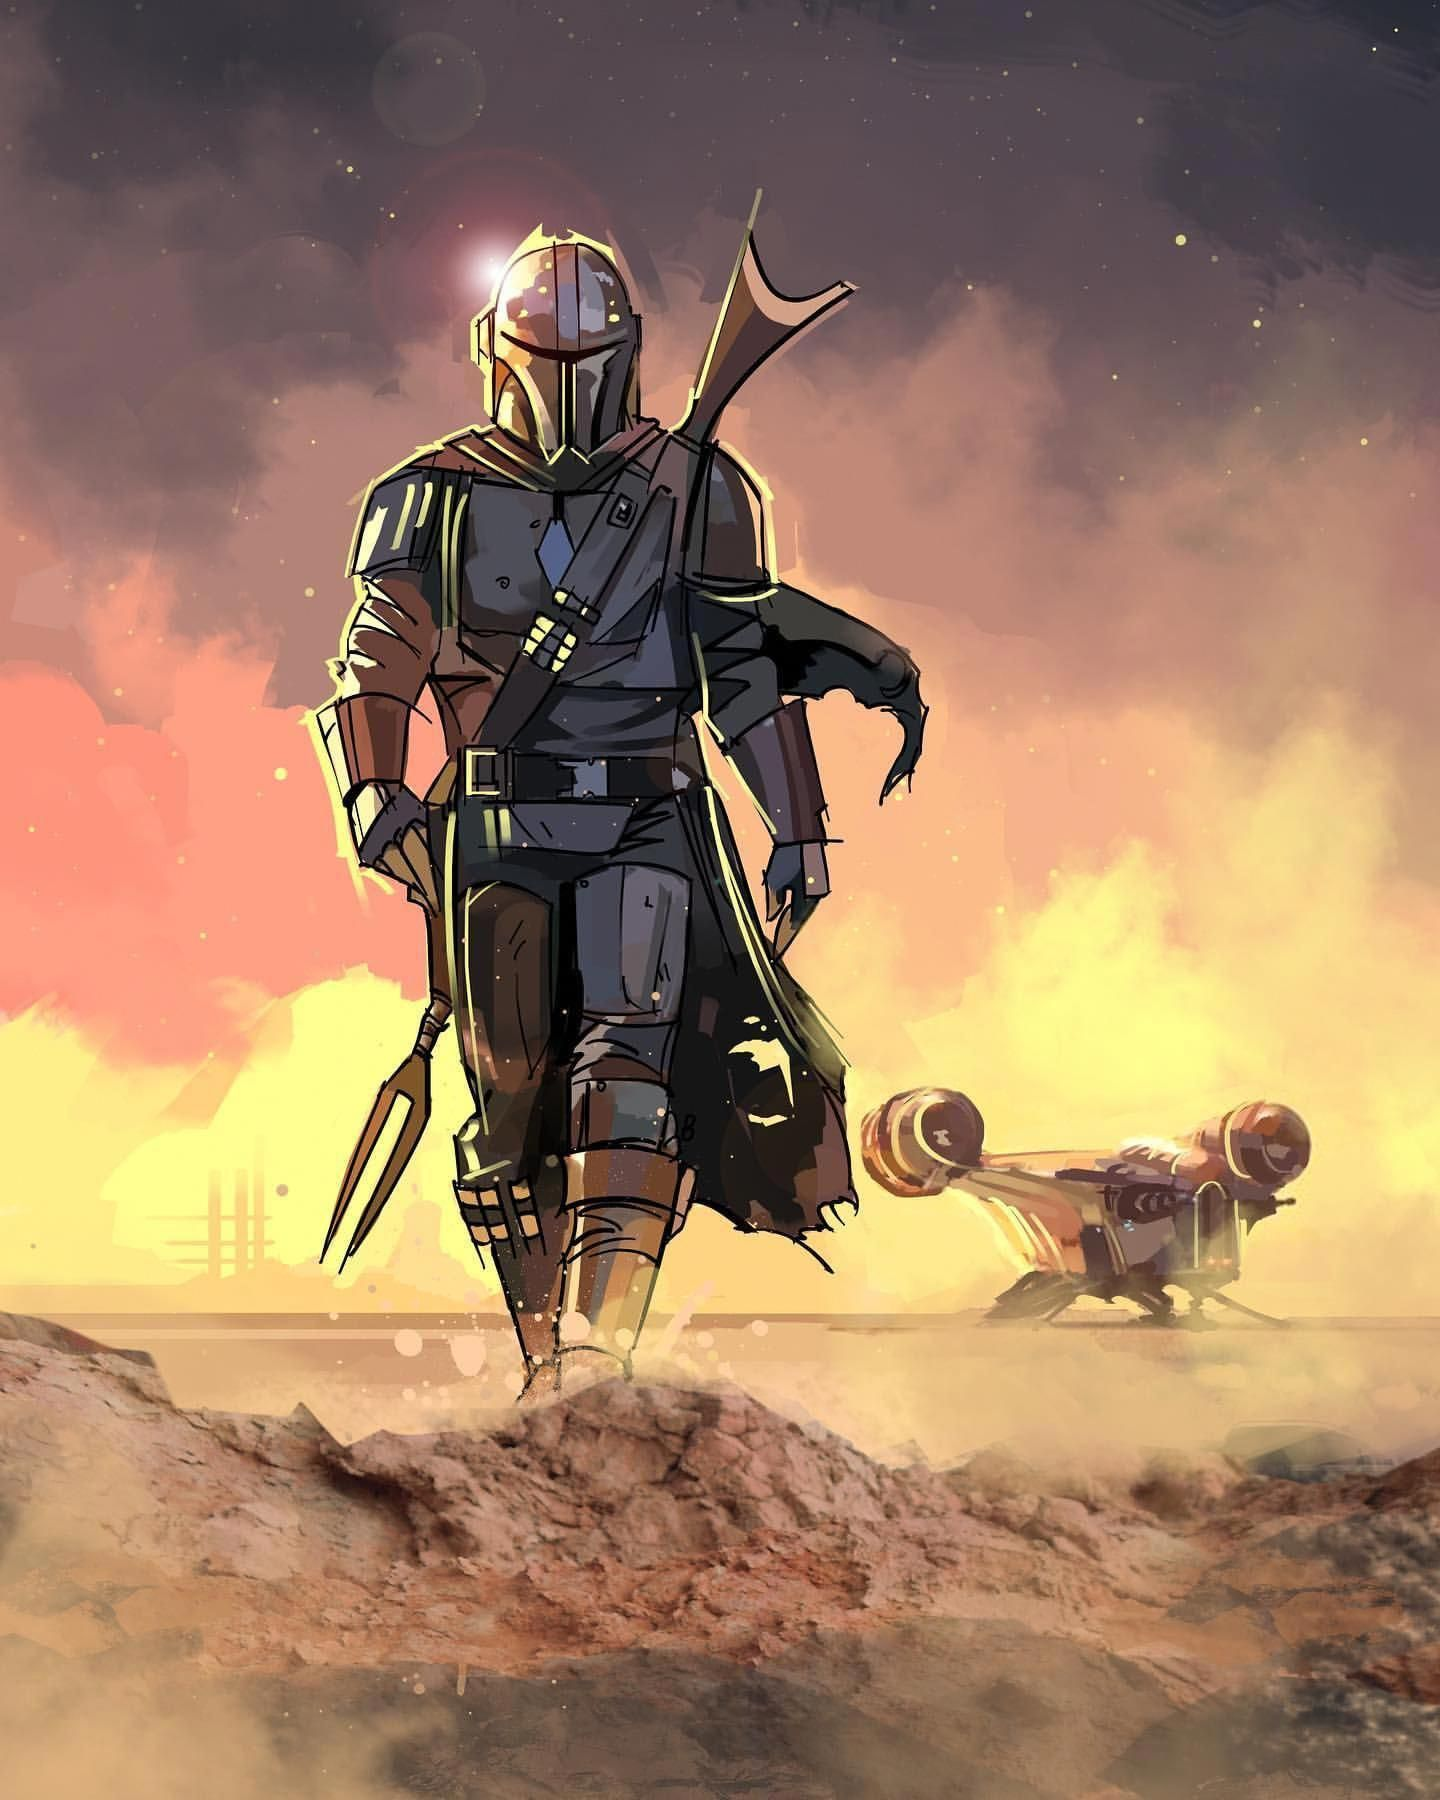 The Mandalorian The Theory that makes Perfect sense in